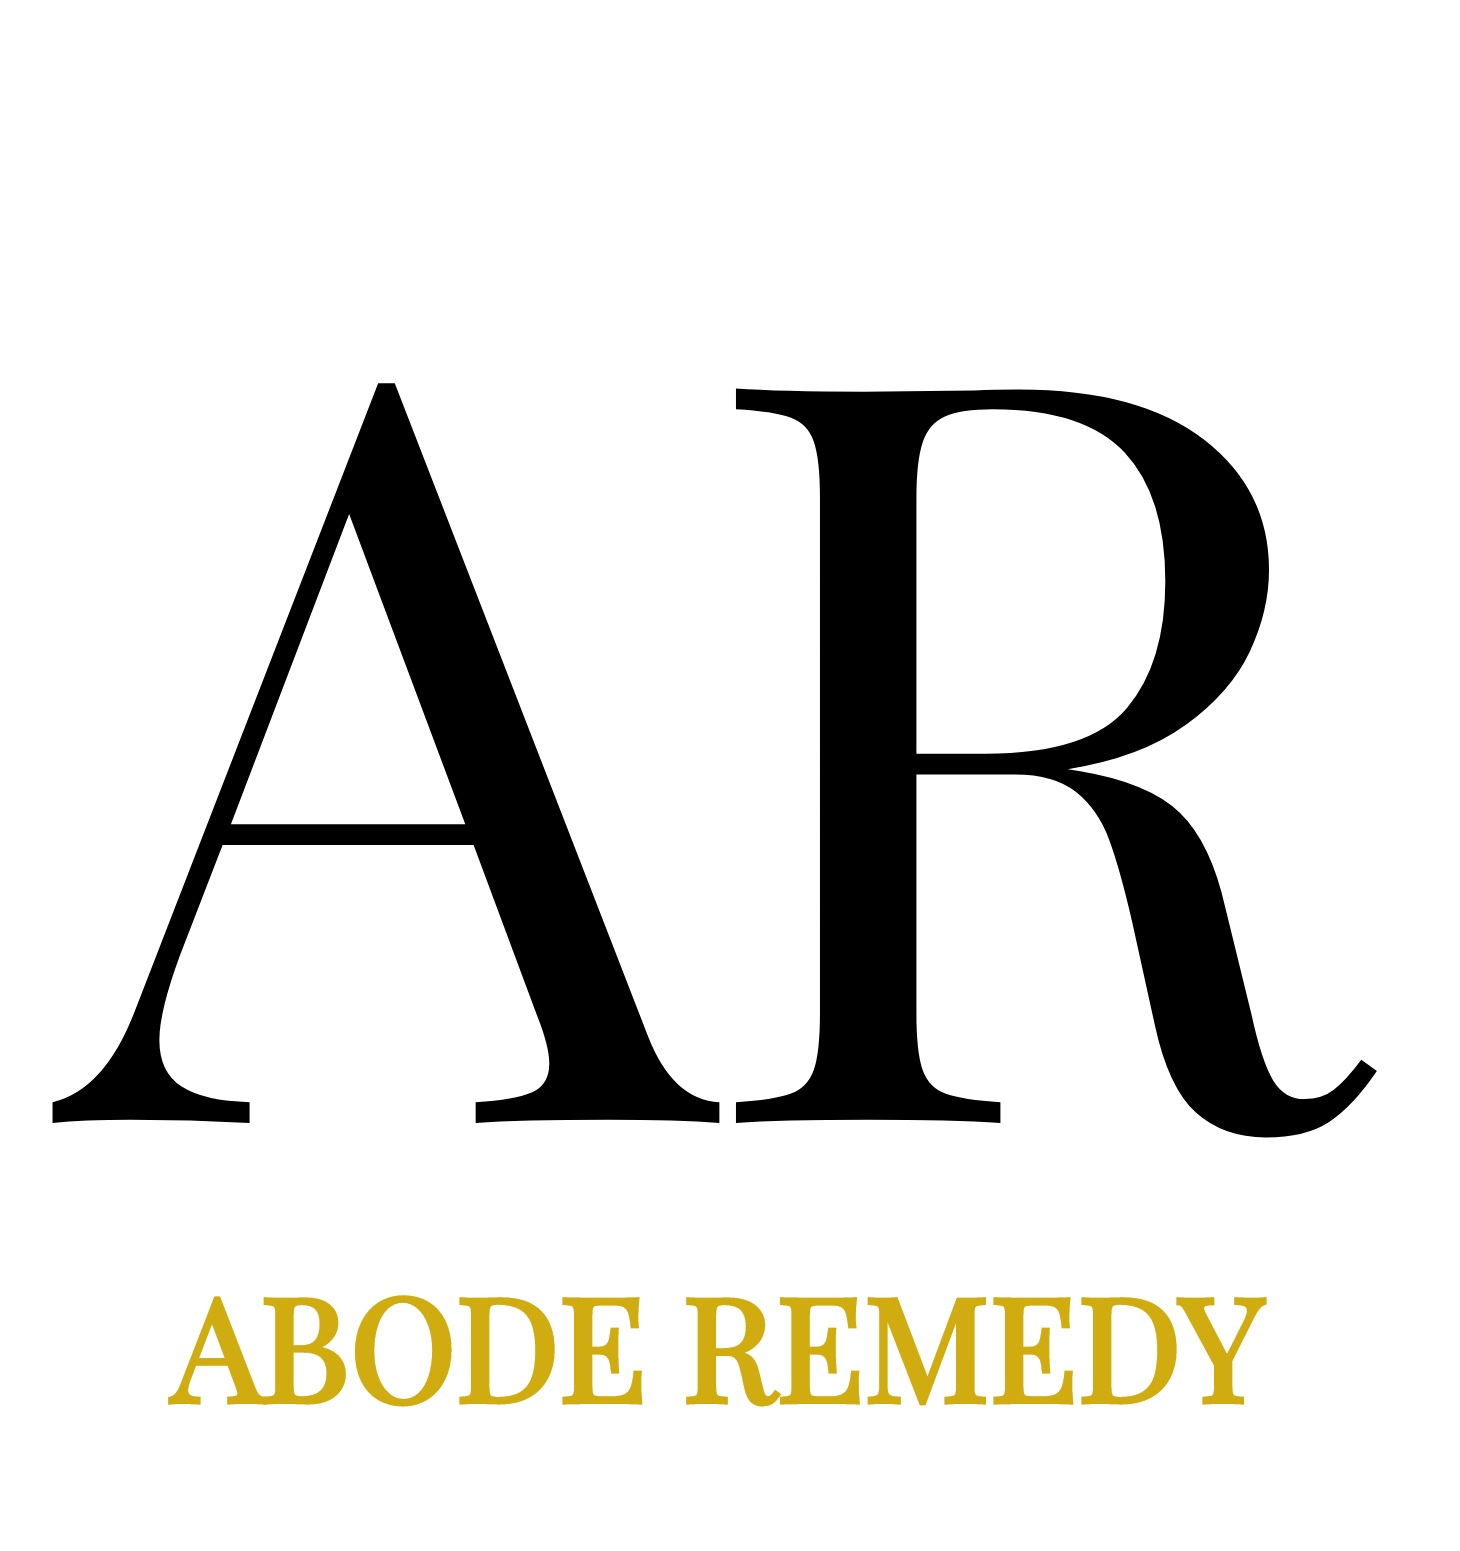 Abode remedy